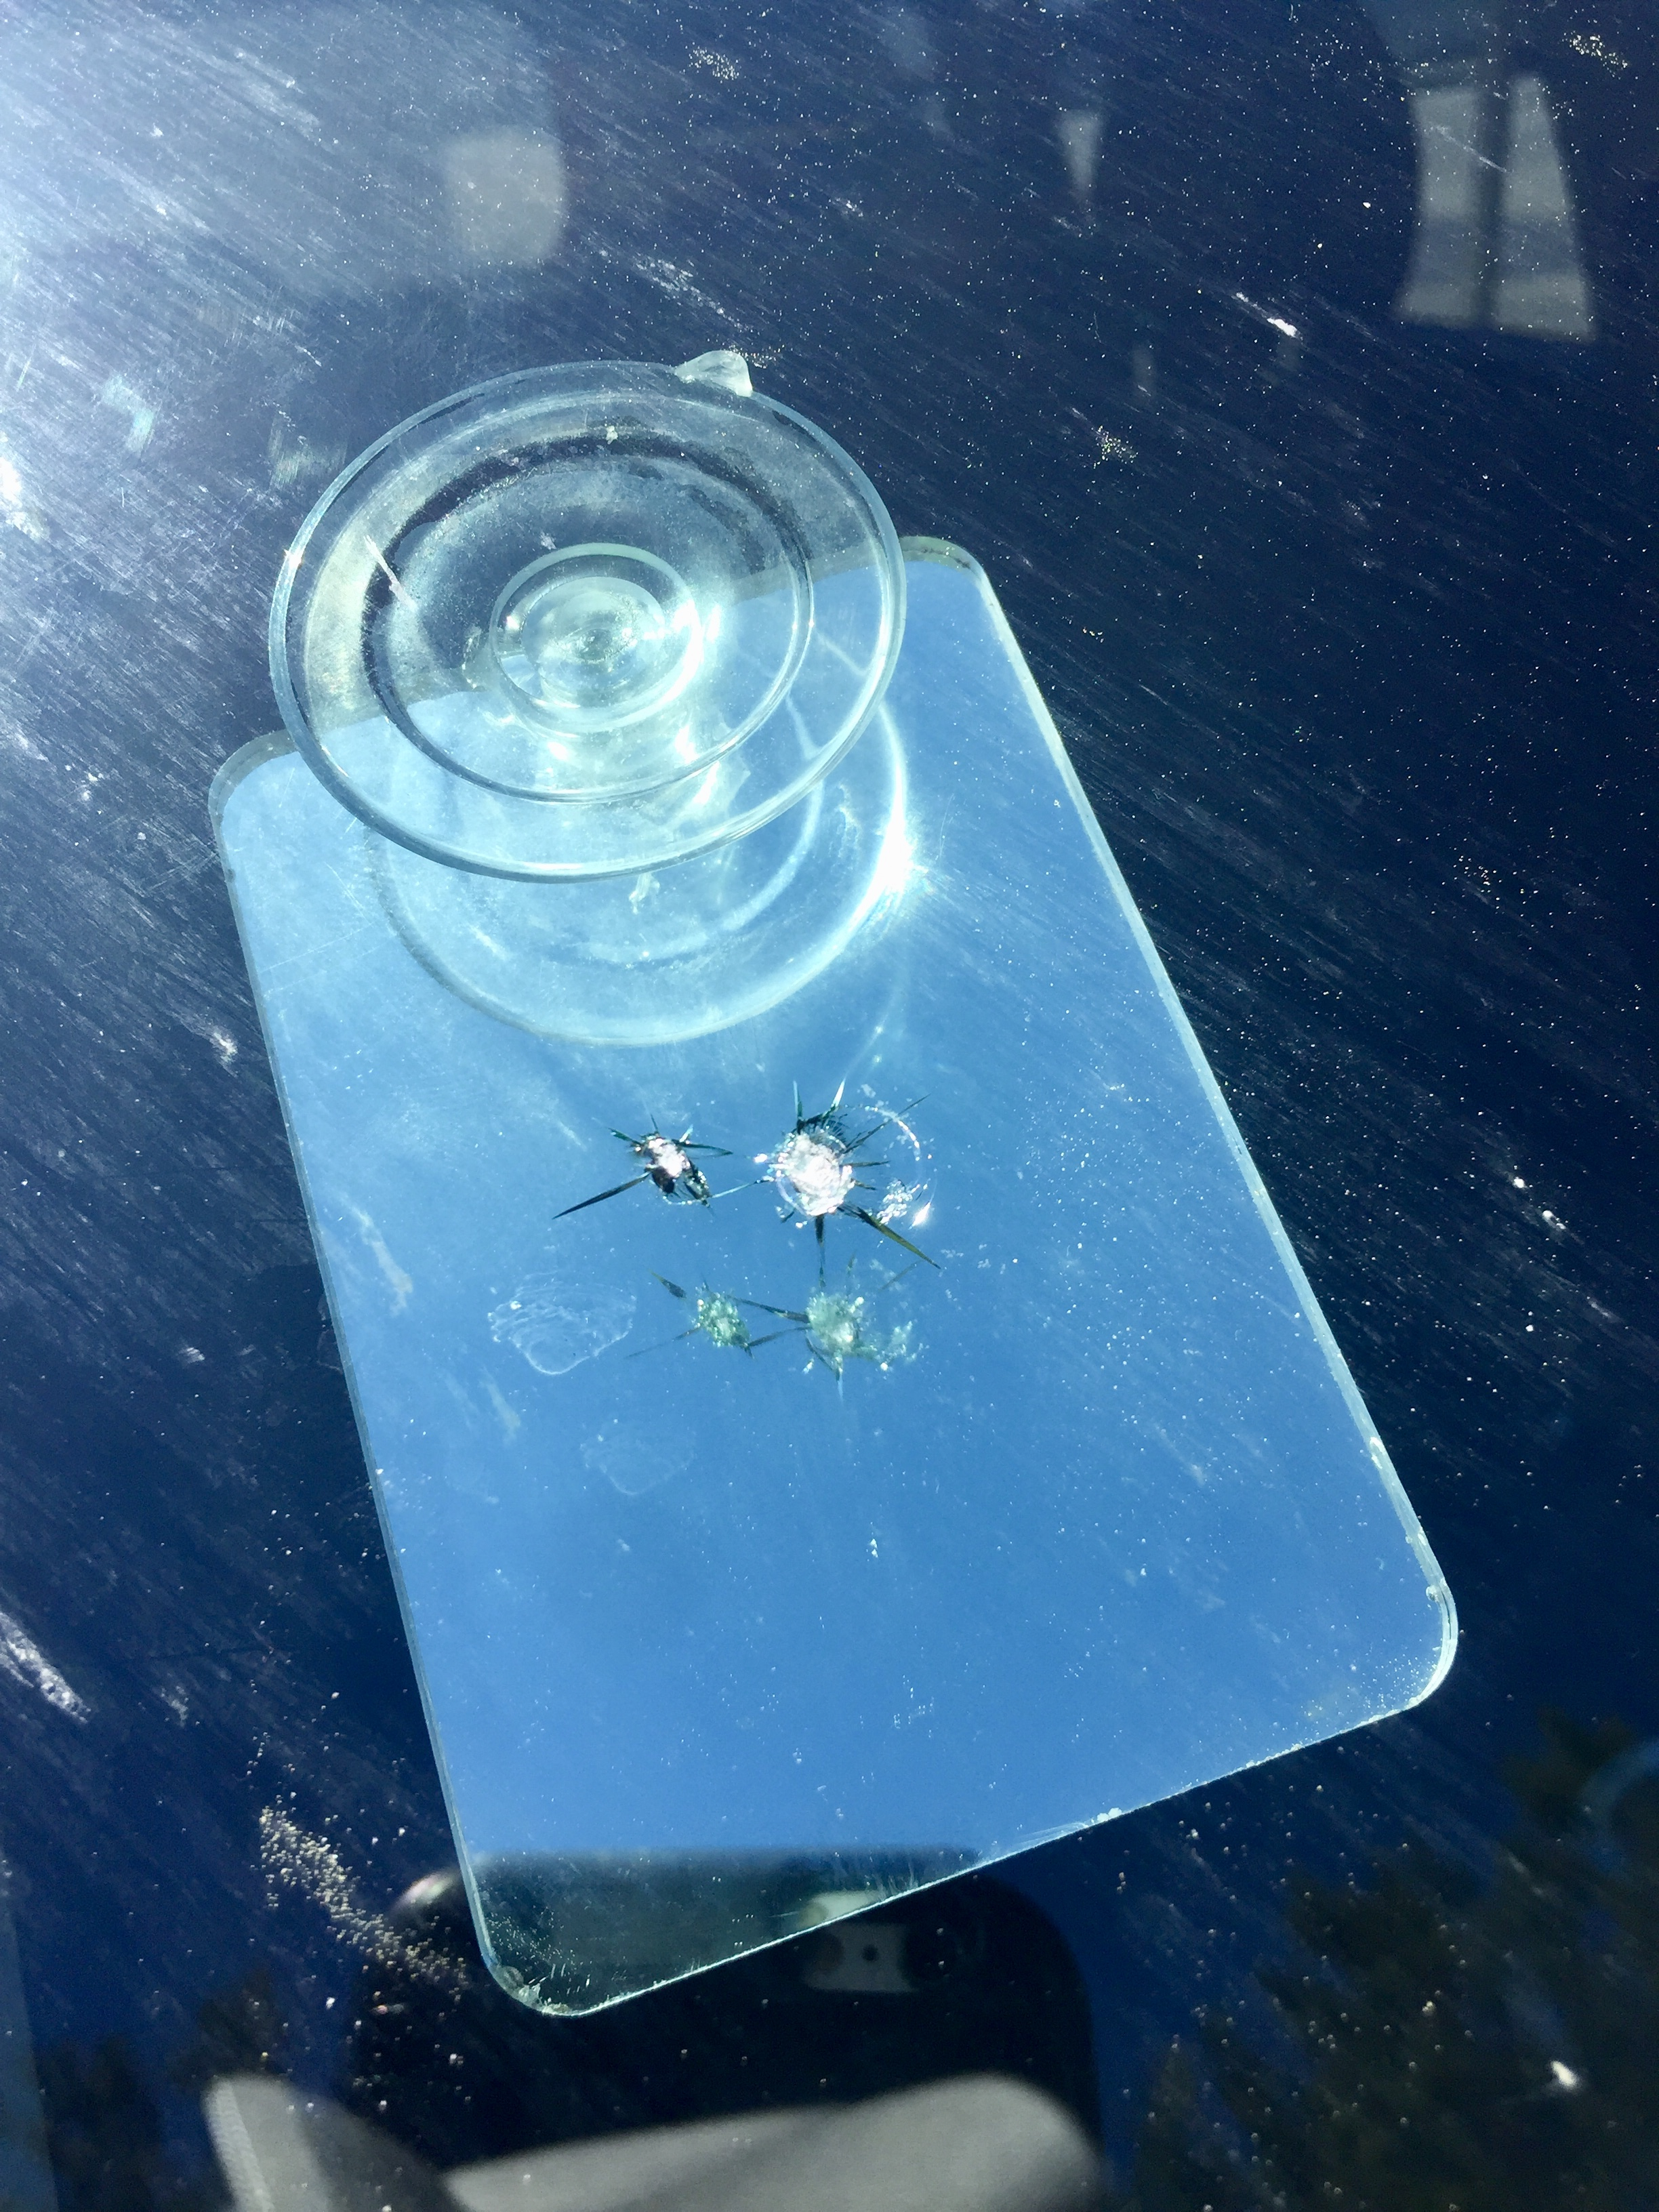 Windshield-repair-3-before.jpg